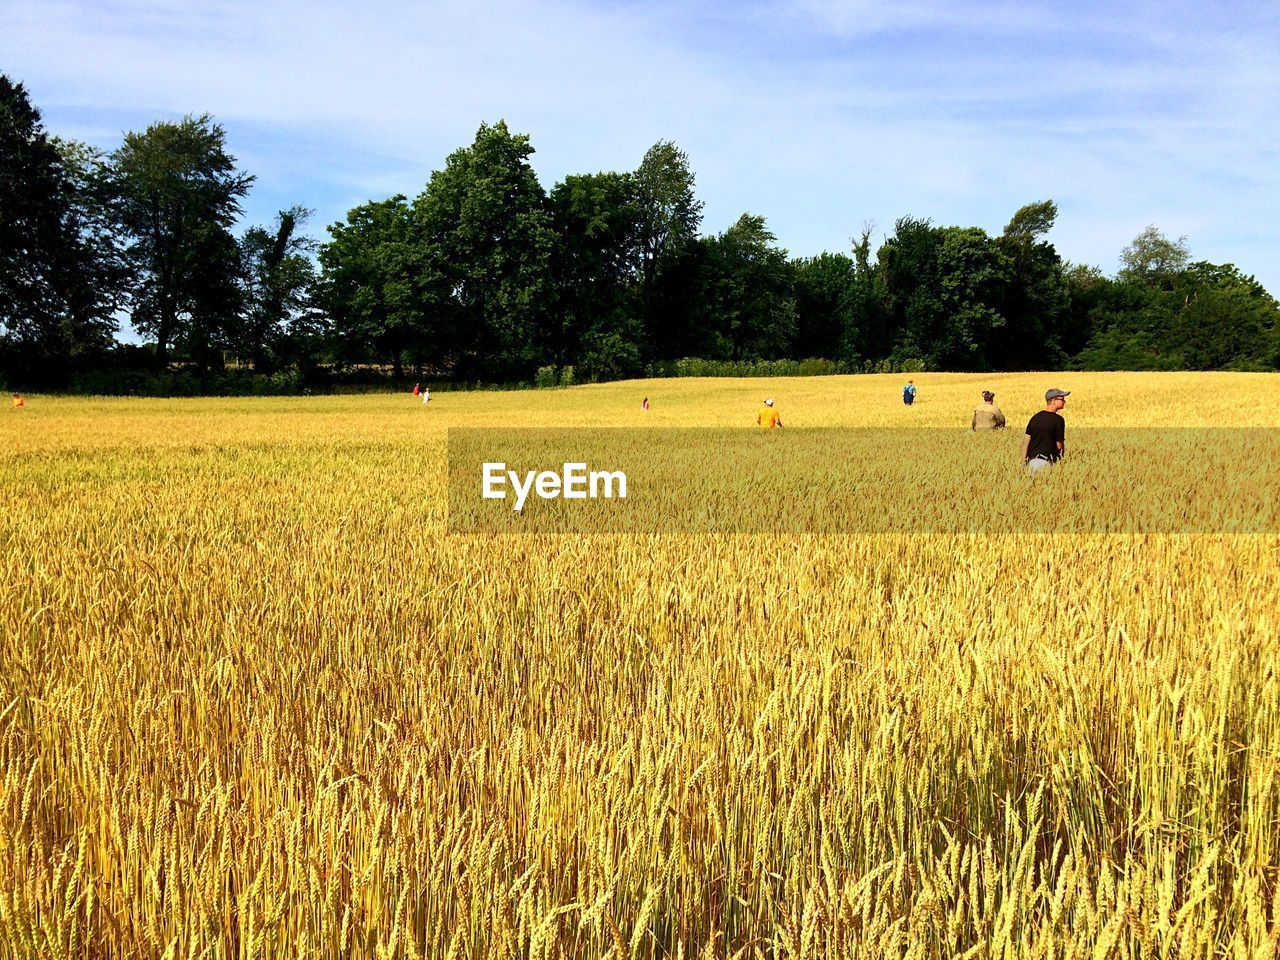 field, tree, growth, agriculture, landscape, nature, sky, grass, real people, rural scene, scenics, outdoors, cloud - sky, day, beauty in nature, men, wheat, cereal plant, one person, people